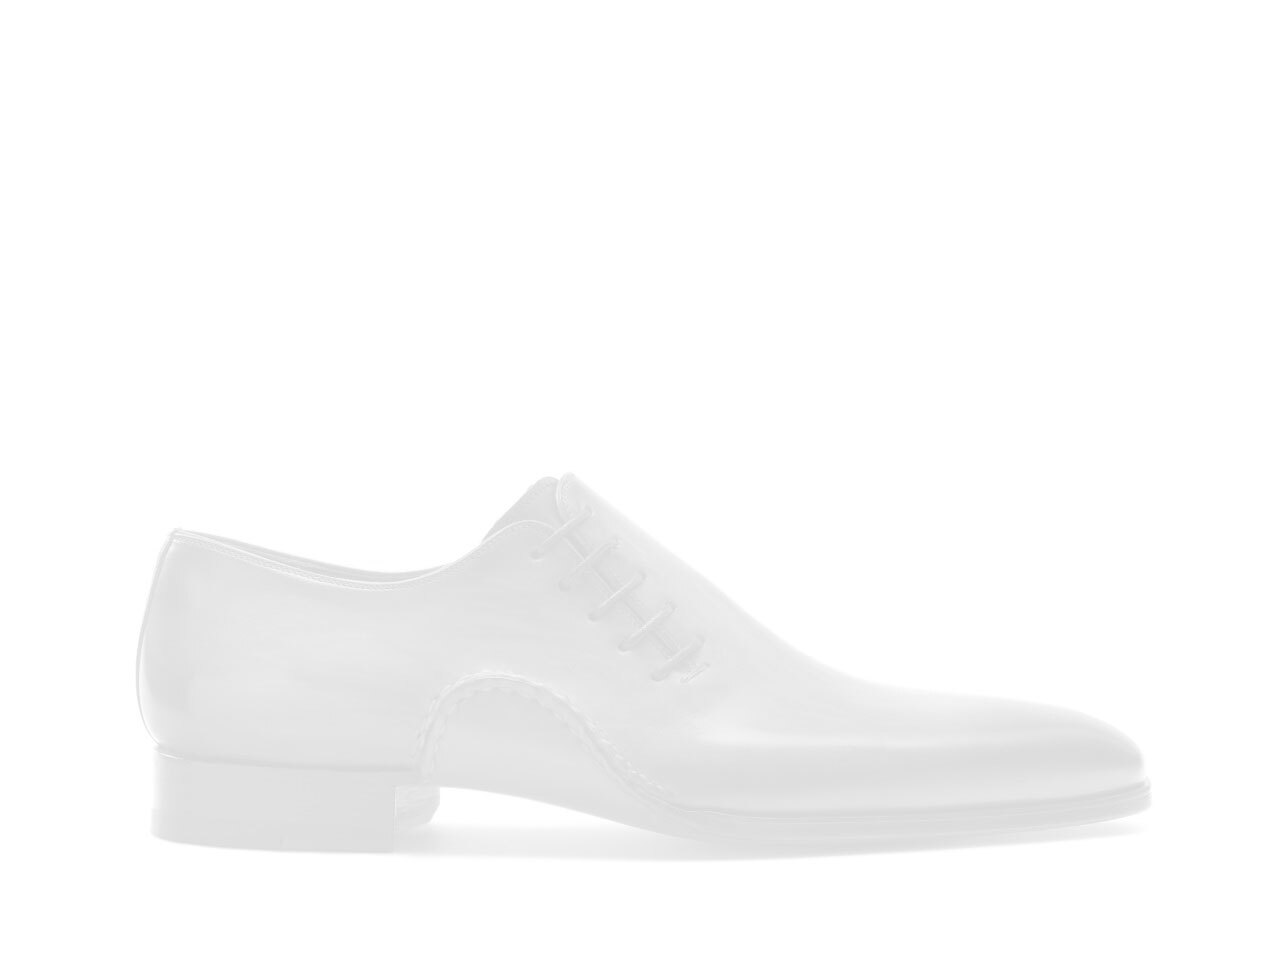 Sole of the Magnanni Ecija II Black and White Men's Sneakers